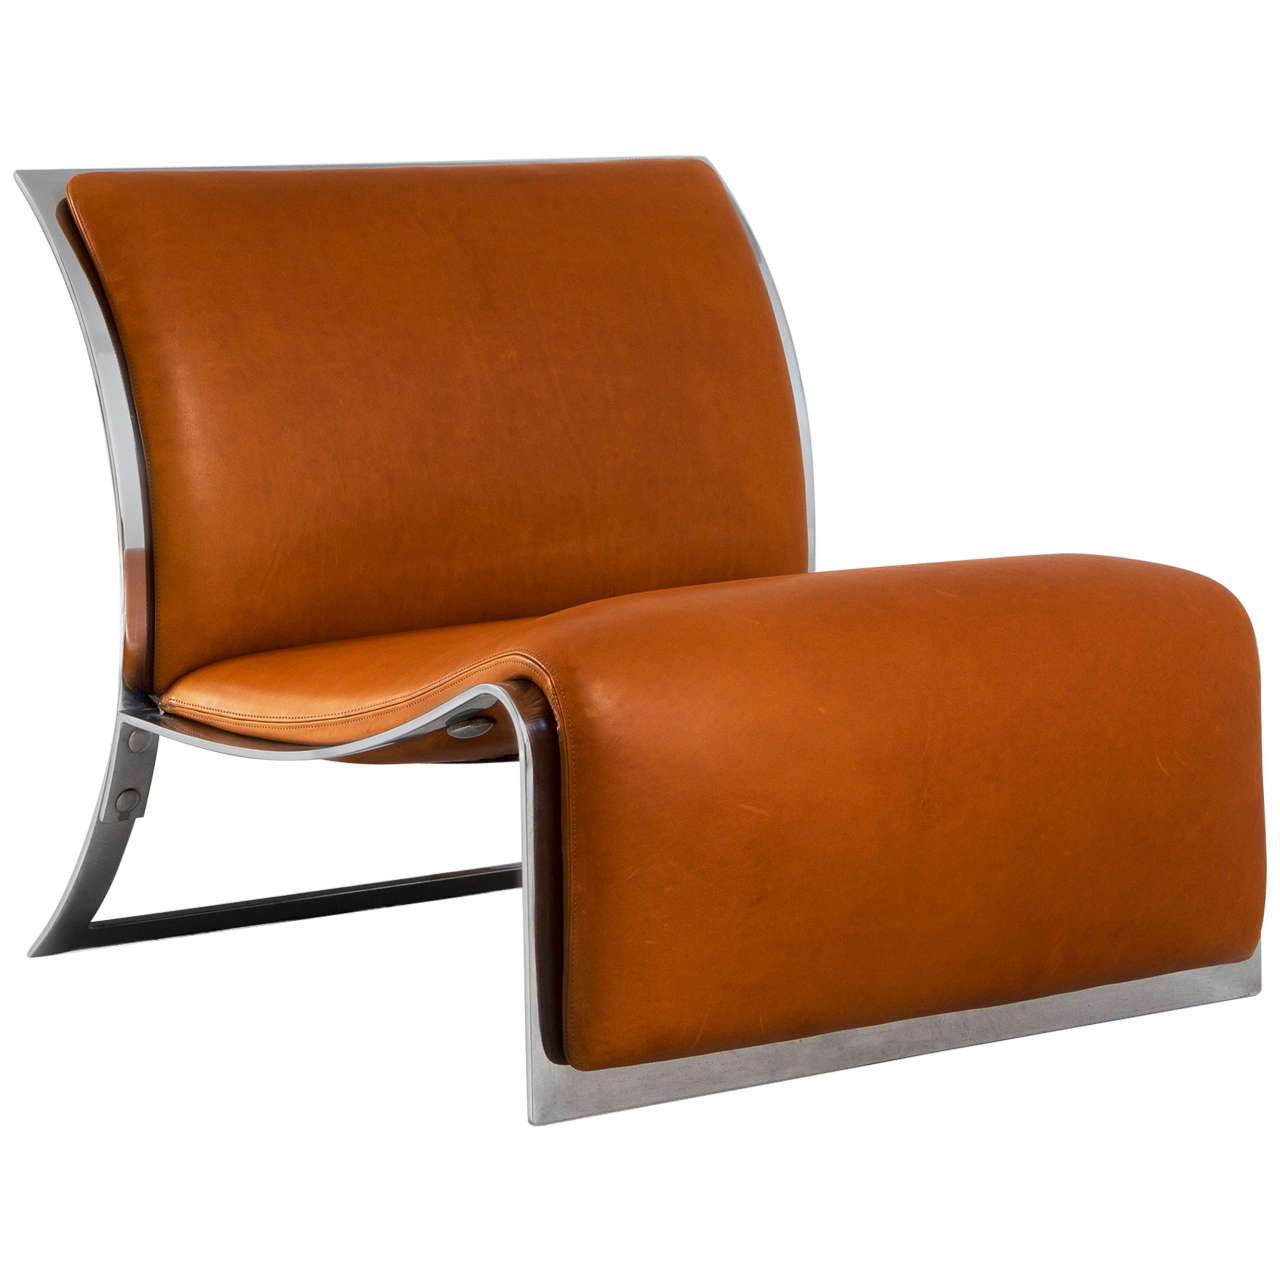 lounge chair in chrome and cognac leather by vittorio introini for  - lounge chair in chrome and cognac leather by vittorio introini for saporiti